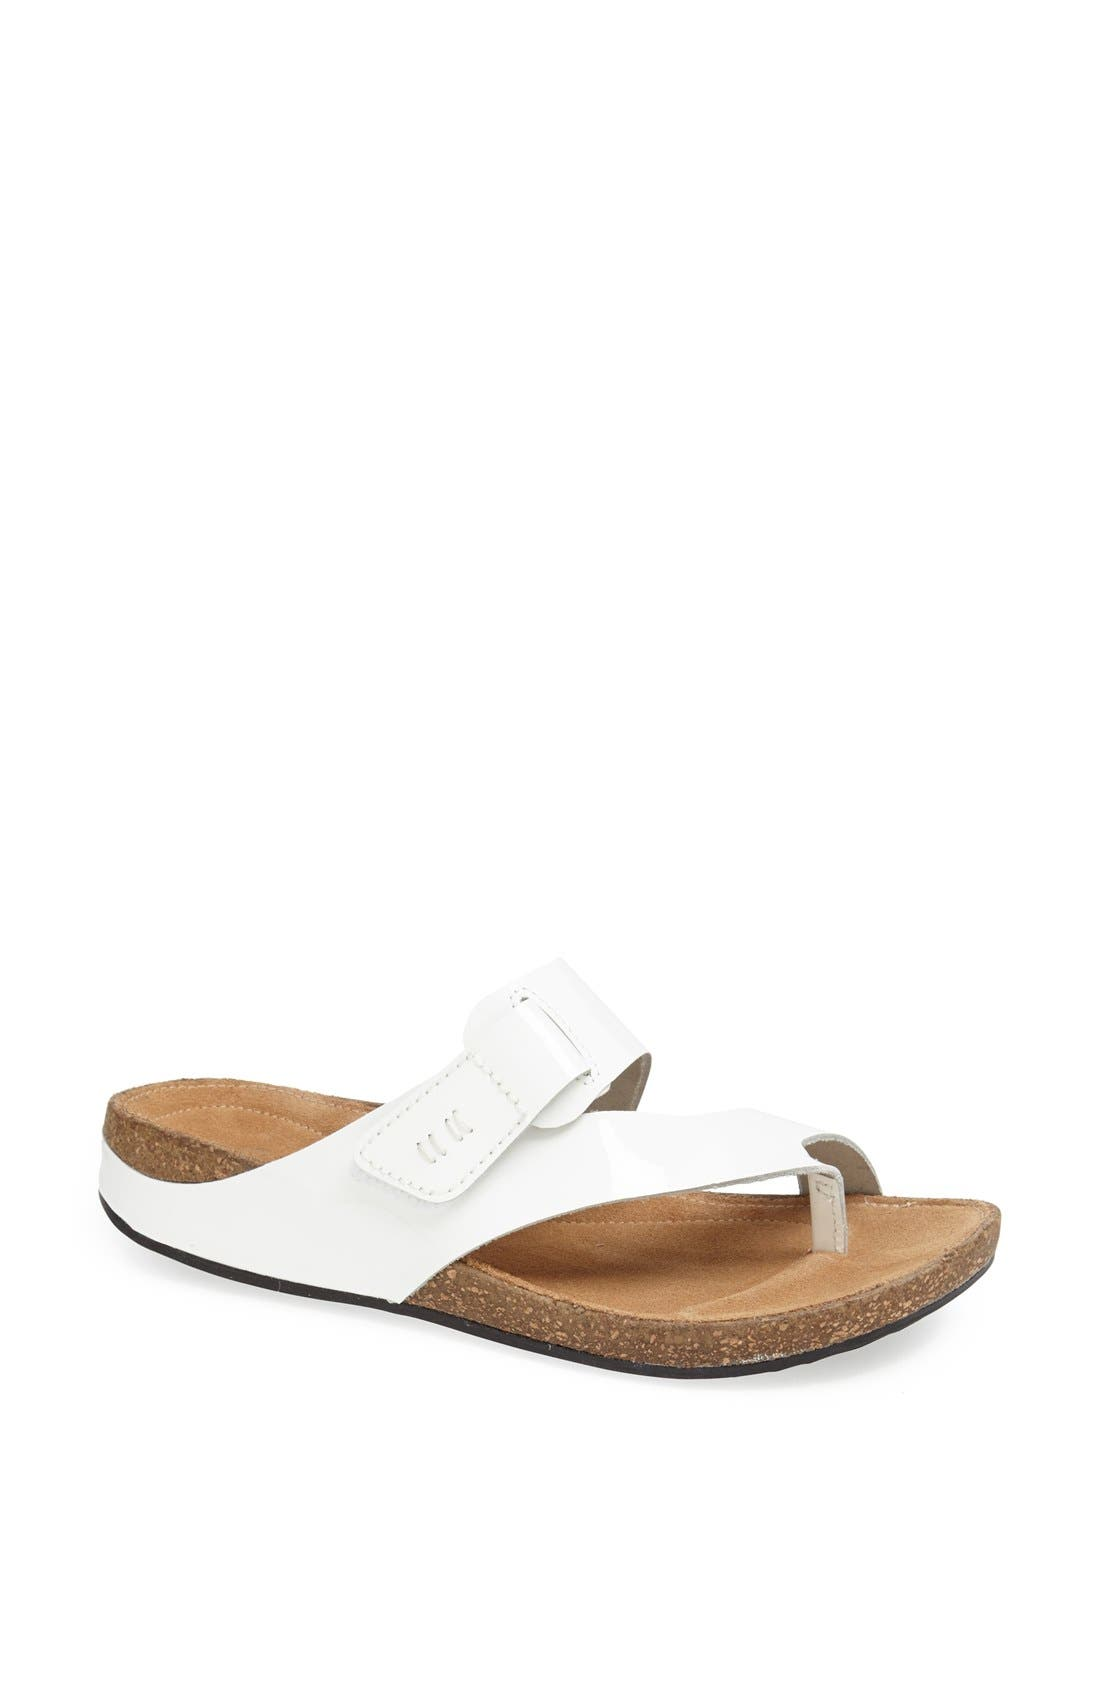 Alternate Image 1 Selected - Clarks® 'Perri Coast' Leather Thong Sandal